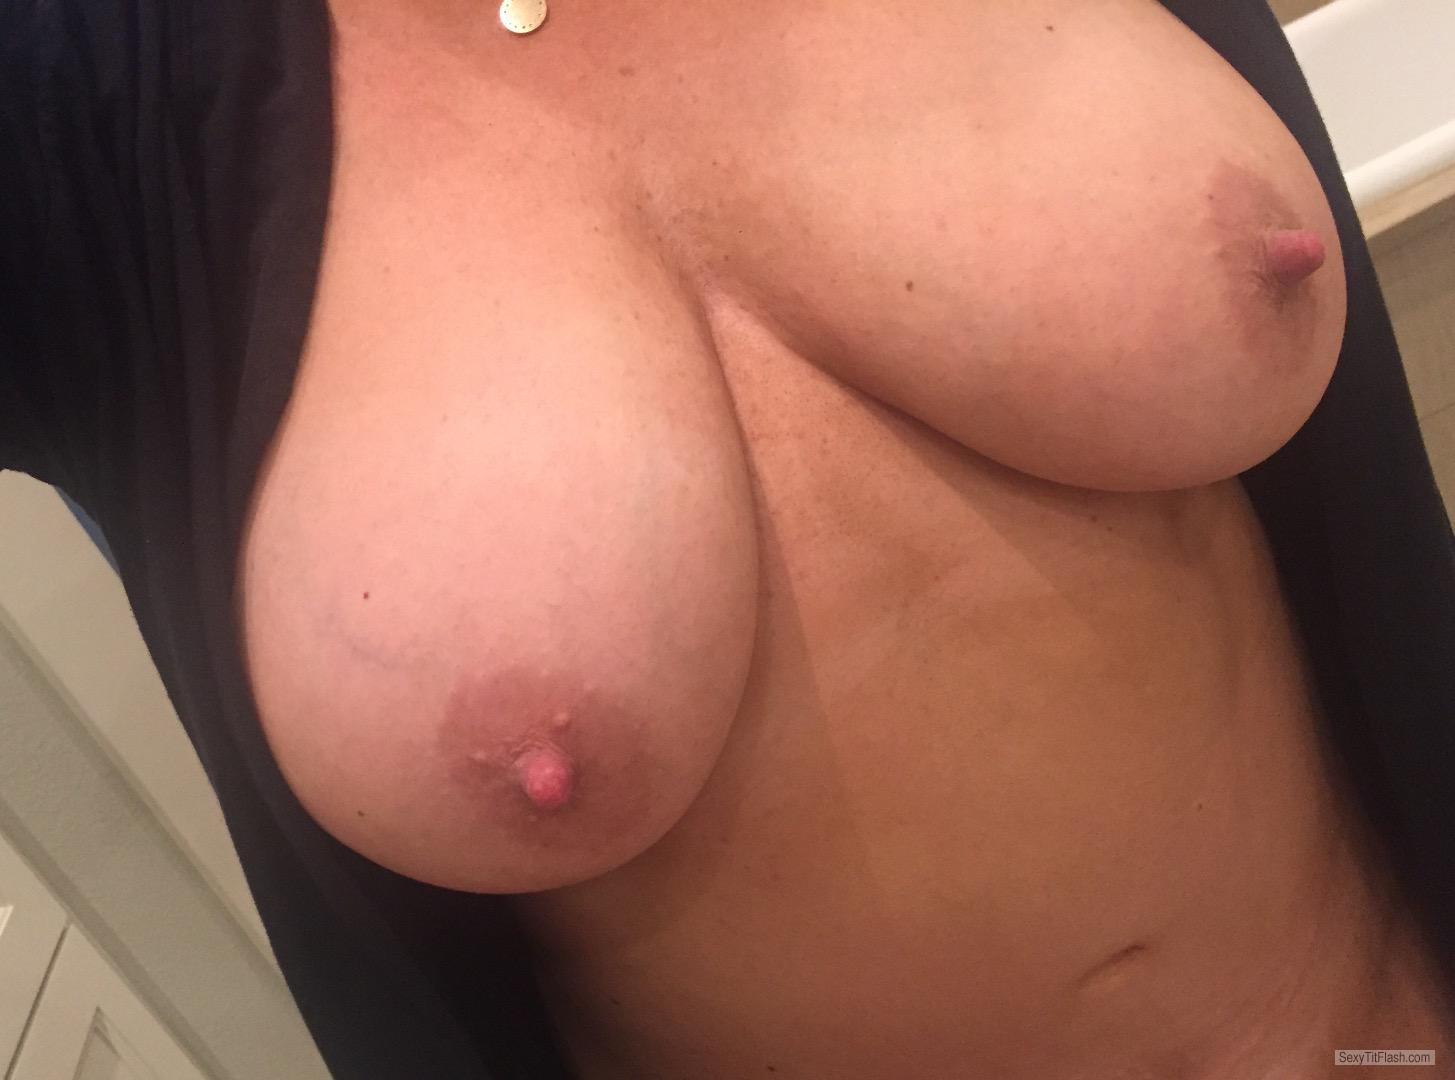 Very small Tits Of My Room Mate Topless Selfie by Sunny